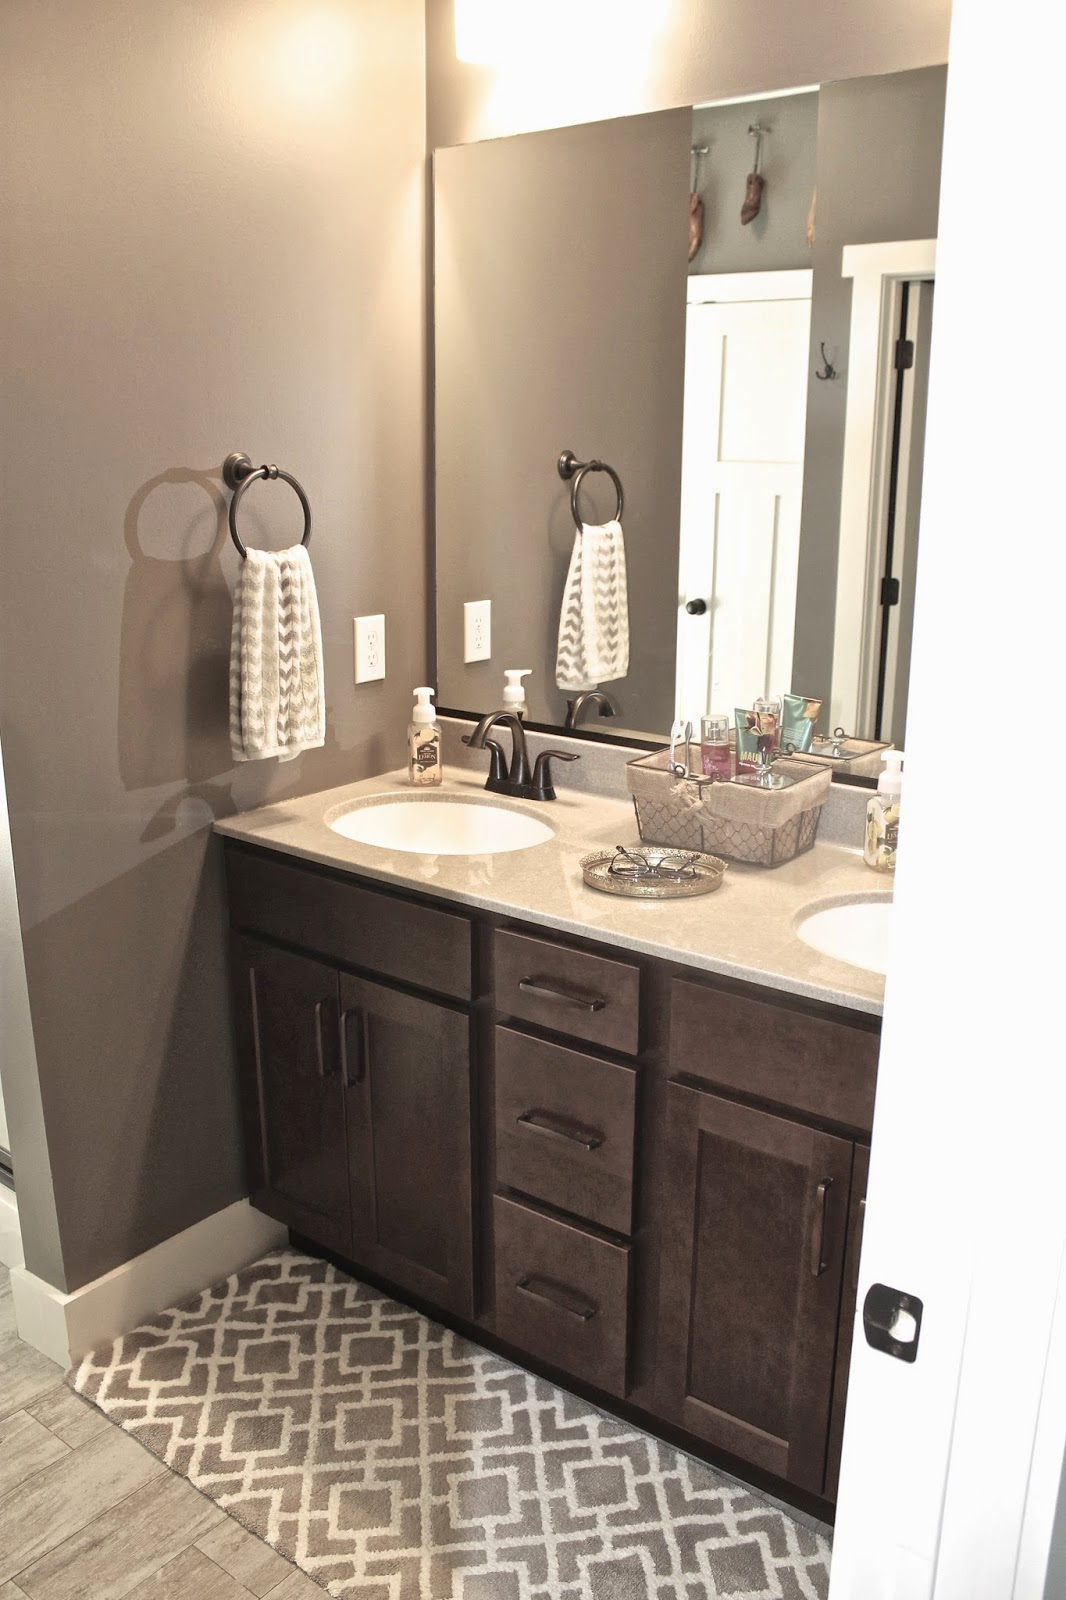 Mink and dover white favorite paint colors blog for Bathroom decor colors